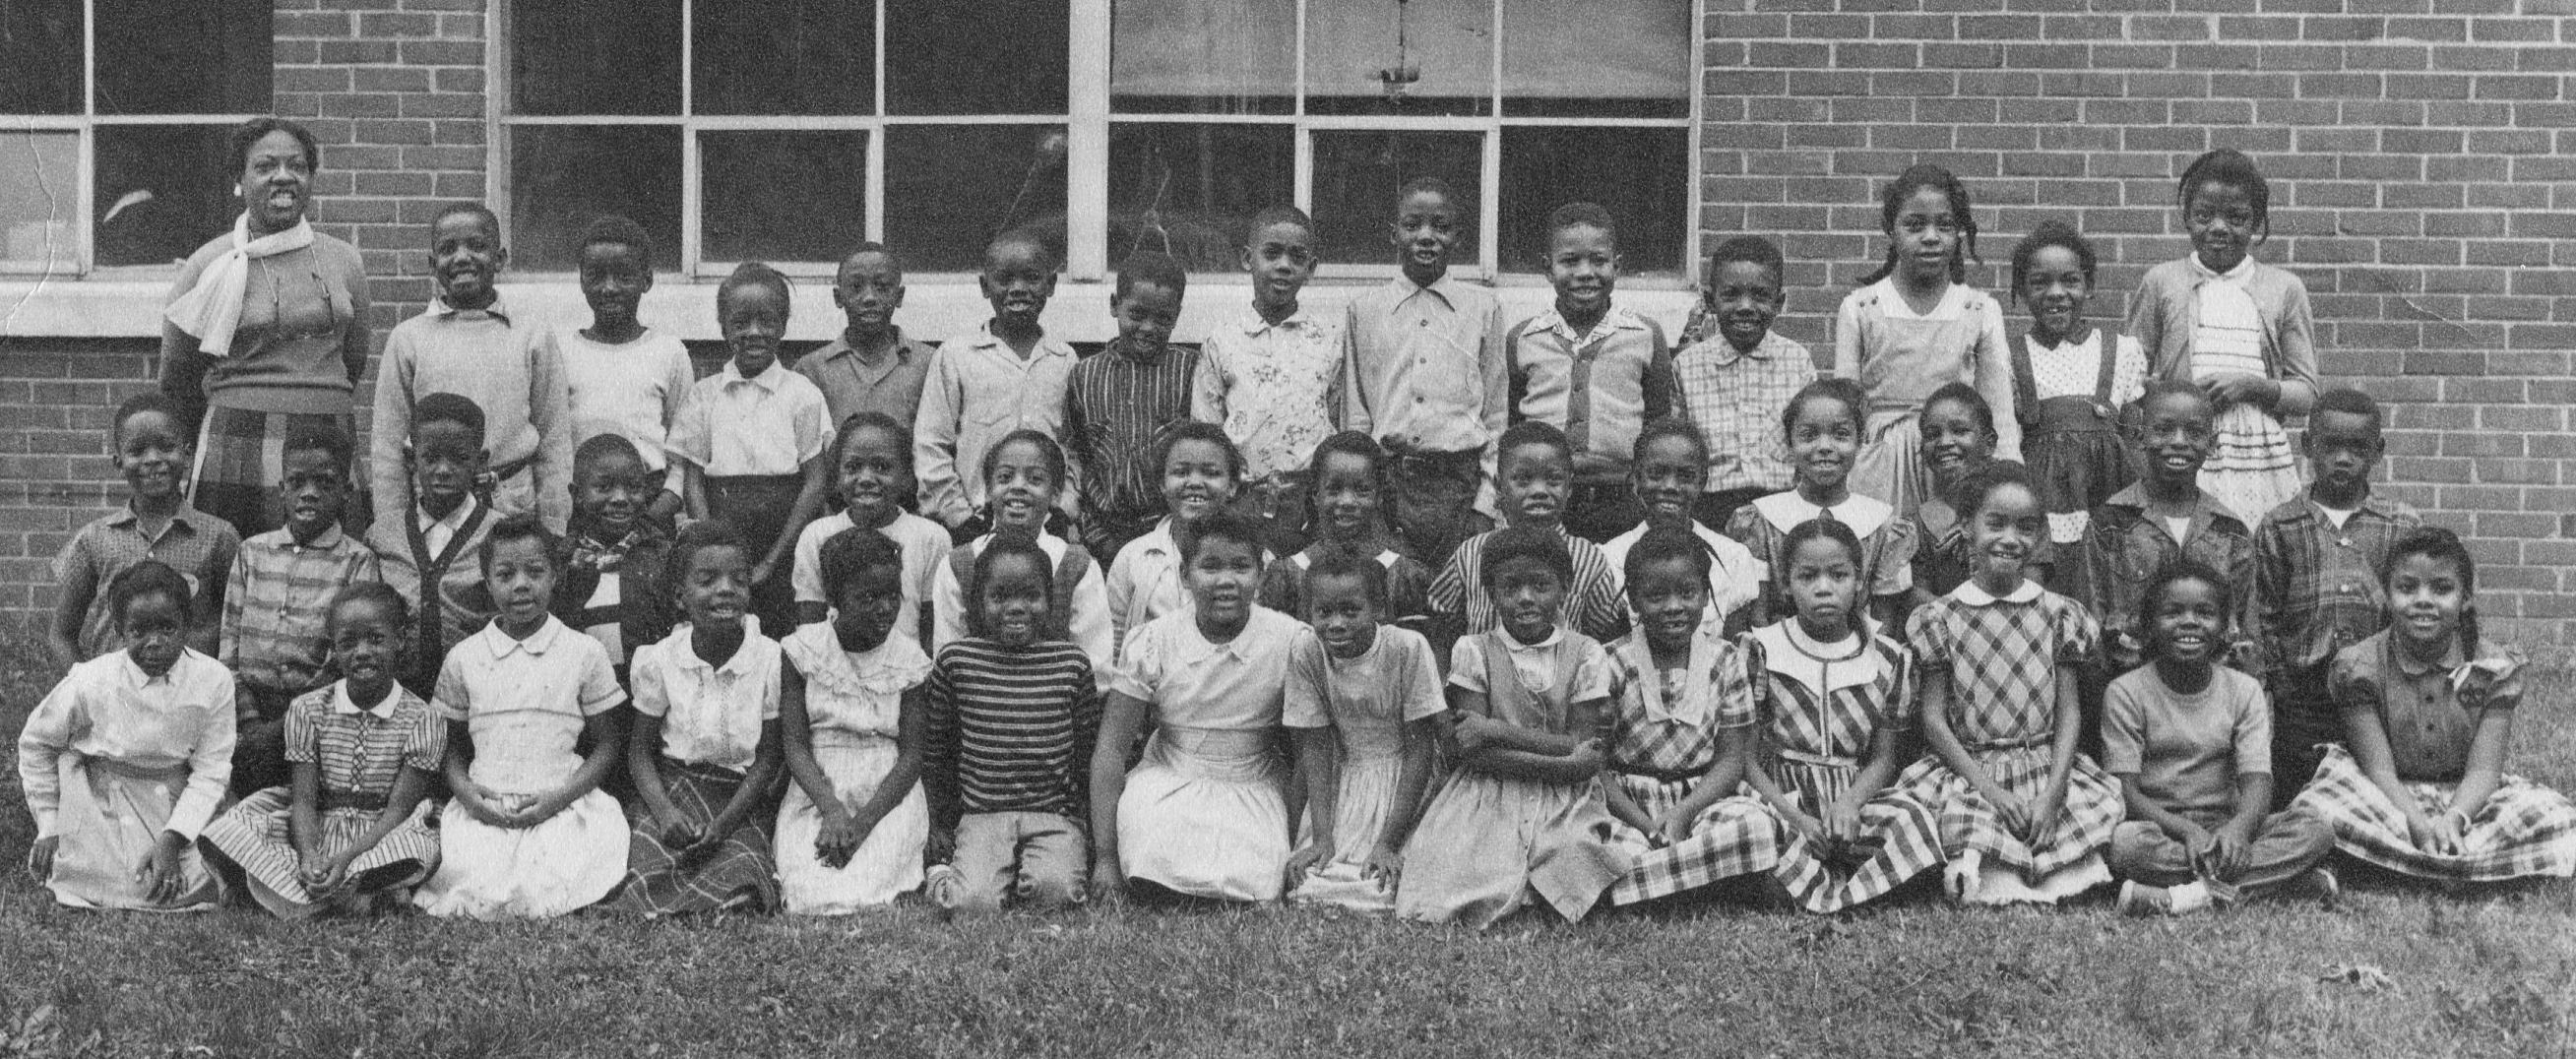 Mrs. Bazelia Harris' class at Franklin Training School. Mrs. Harris lived on Natchez Street near the school and was a long-time and much-beloved teacher.